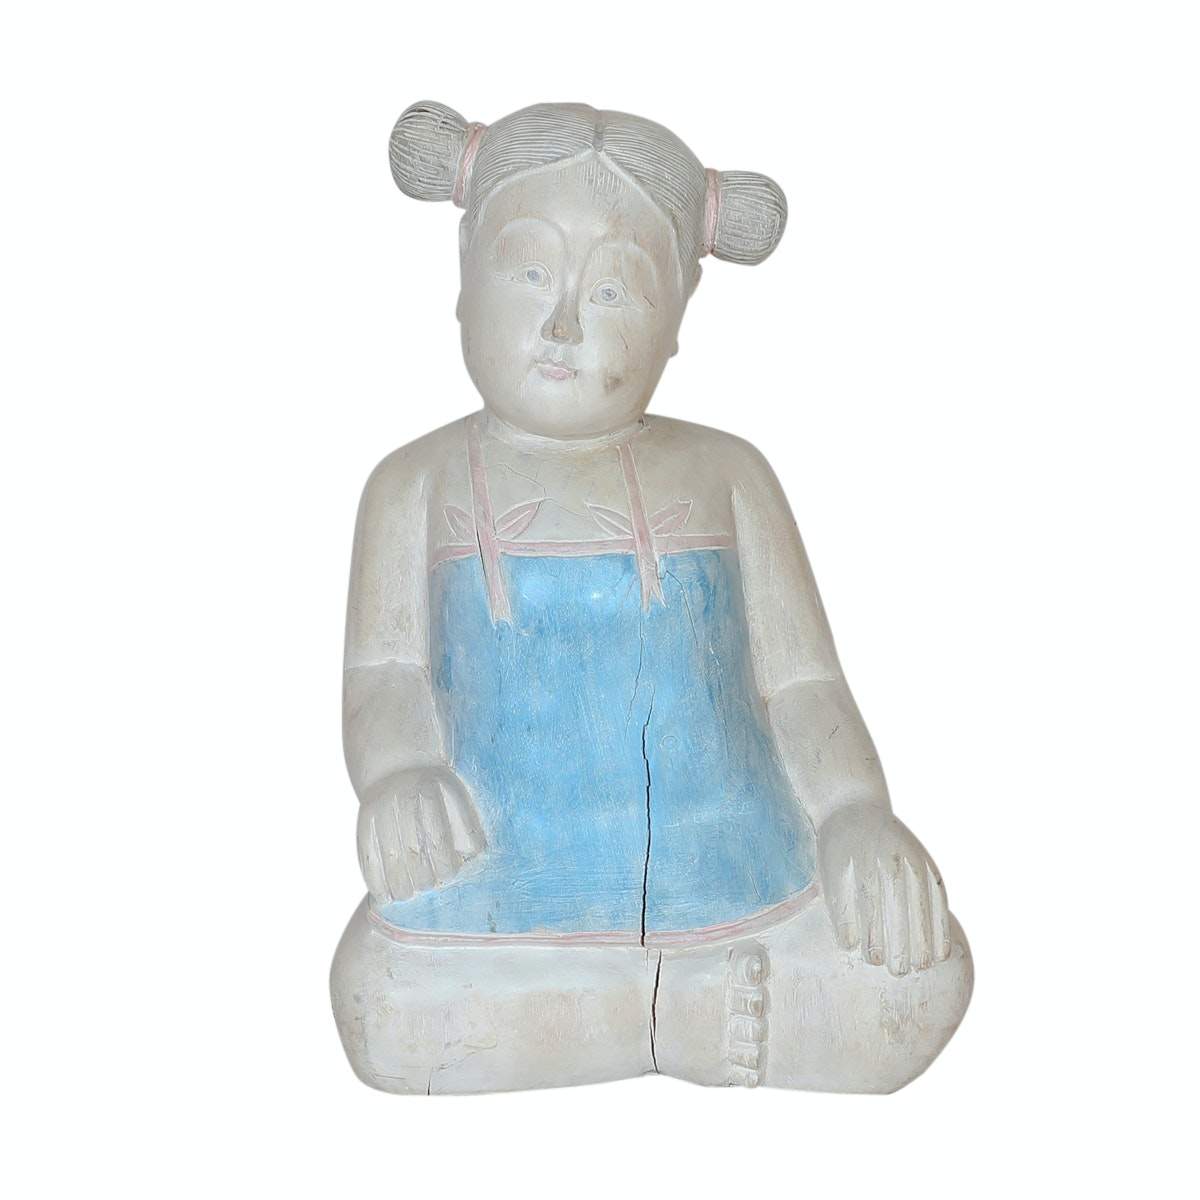 Chinese Wooden Sculpture of Sitting Figure